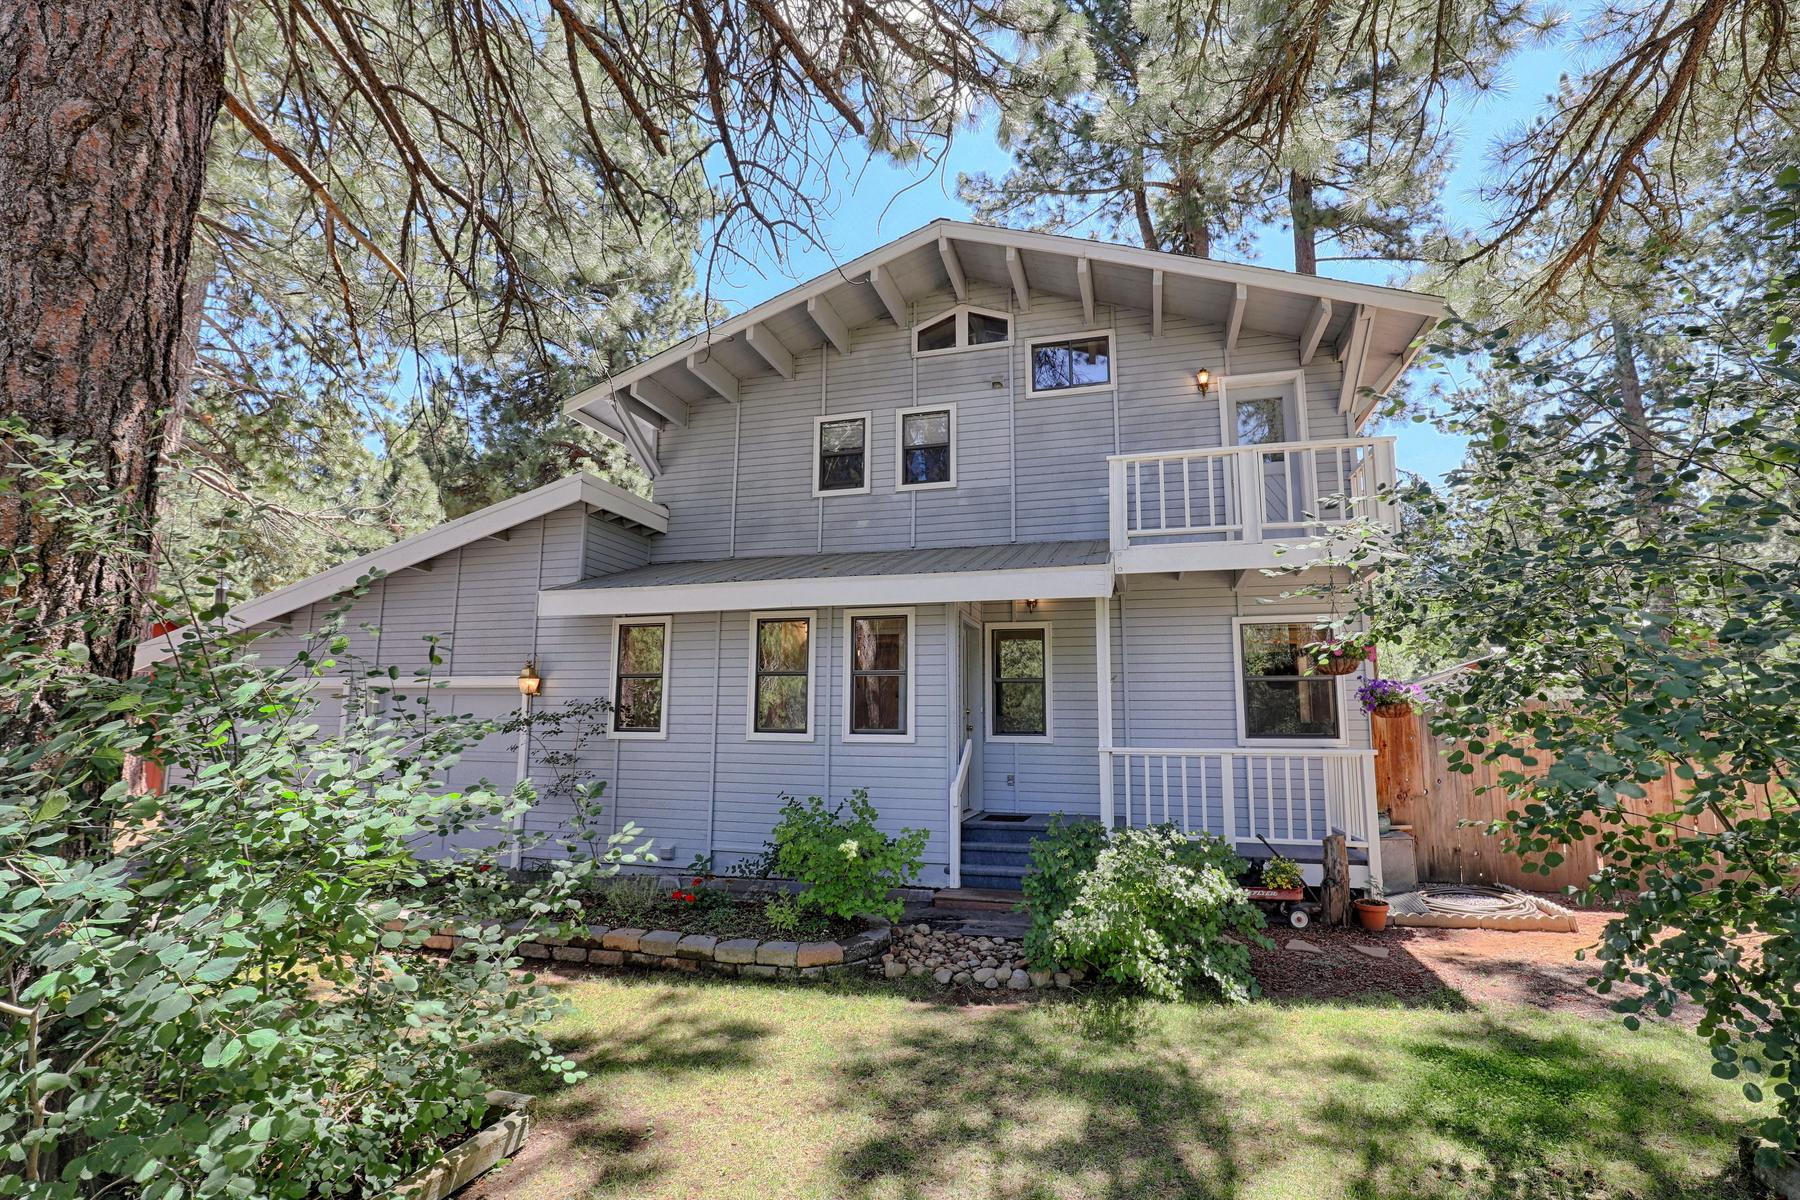 Single Family Homes for Active at 10793 Torrey Pine Road, Truckee, CA 96161 10793 Torrey Pine Road Truckee, California 96161 United States